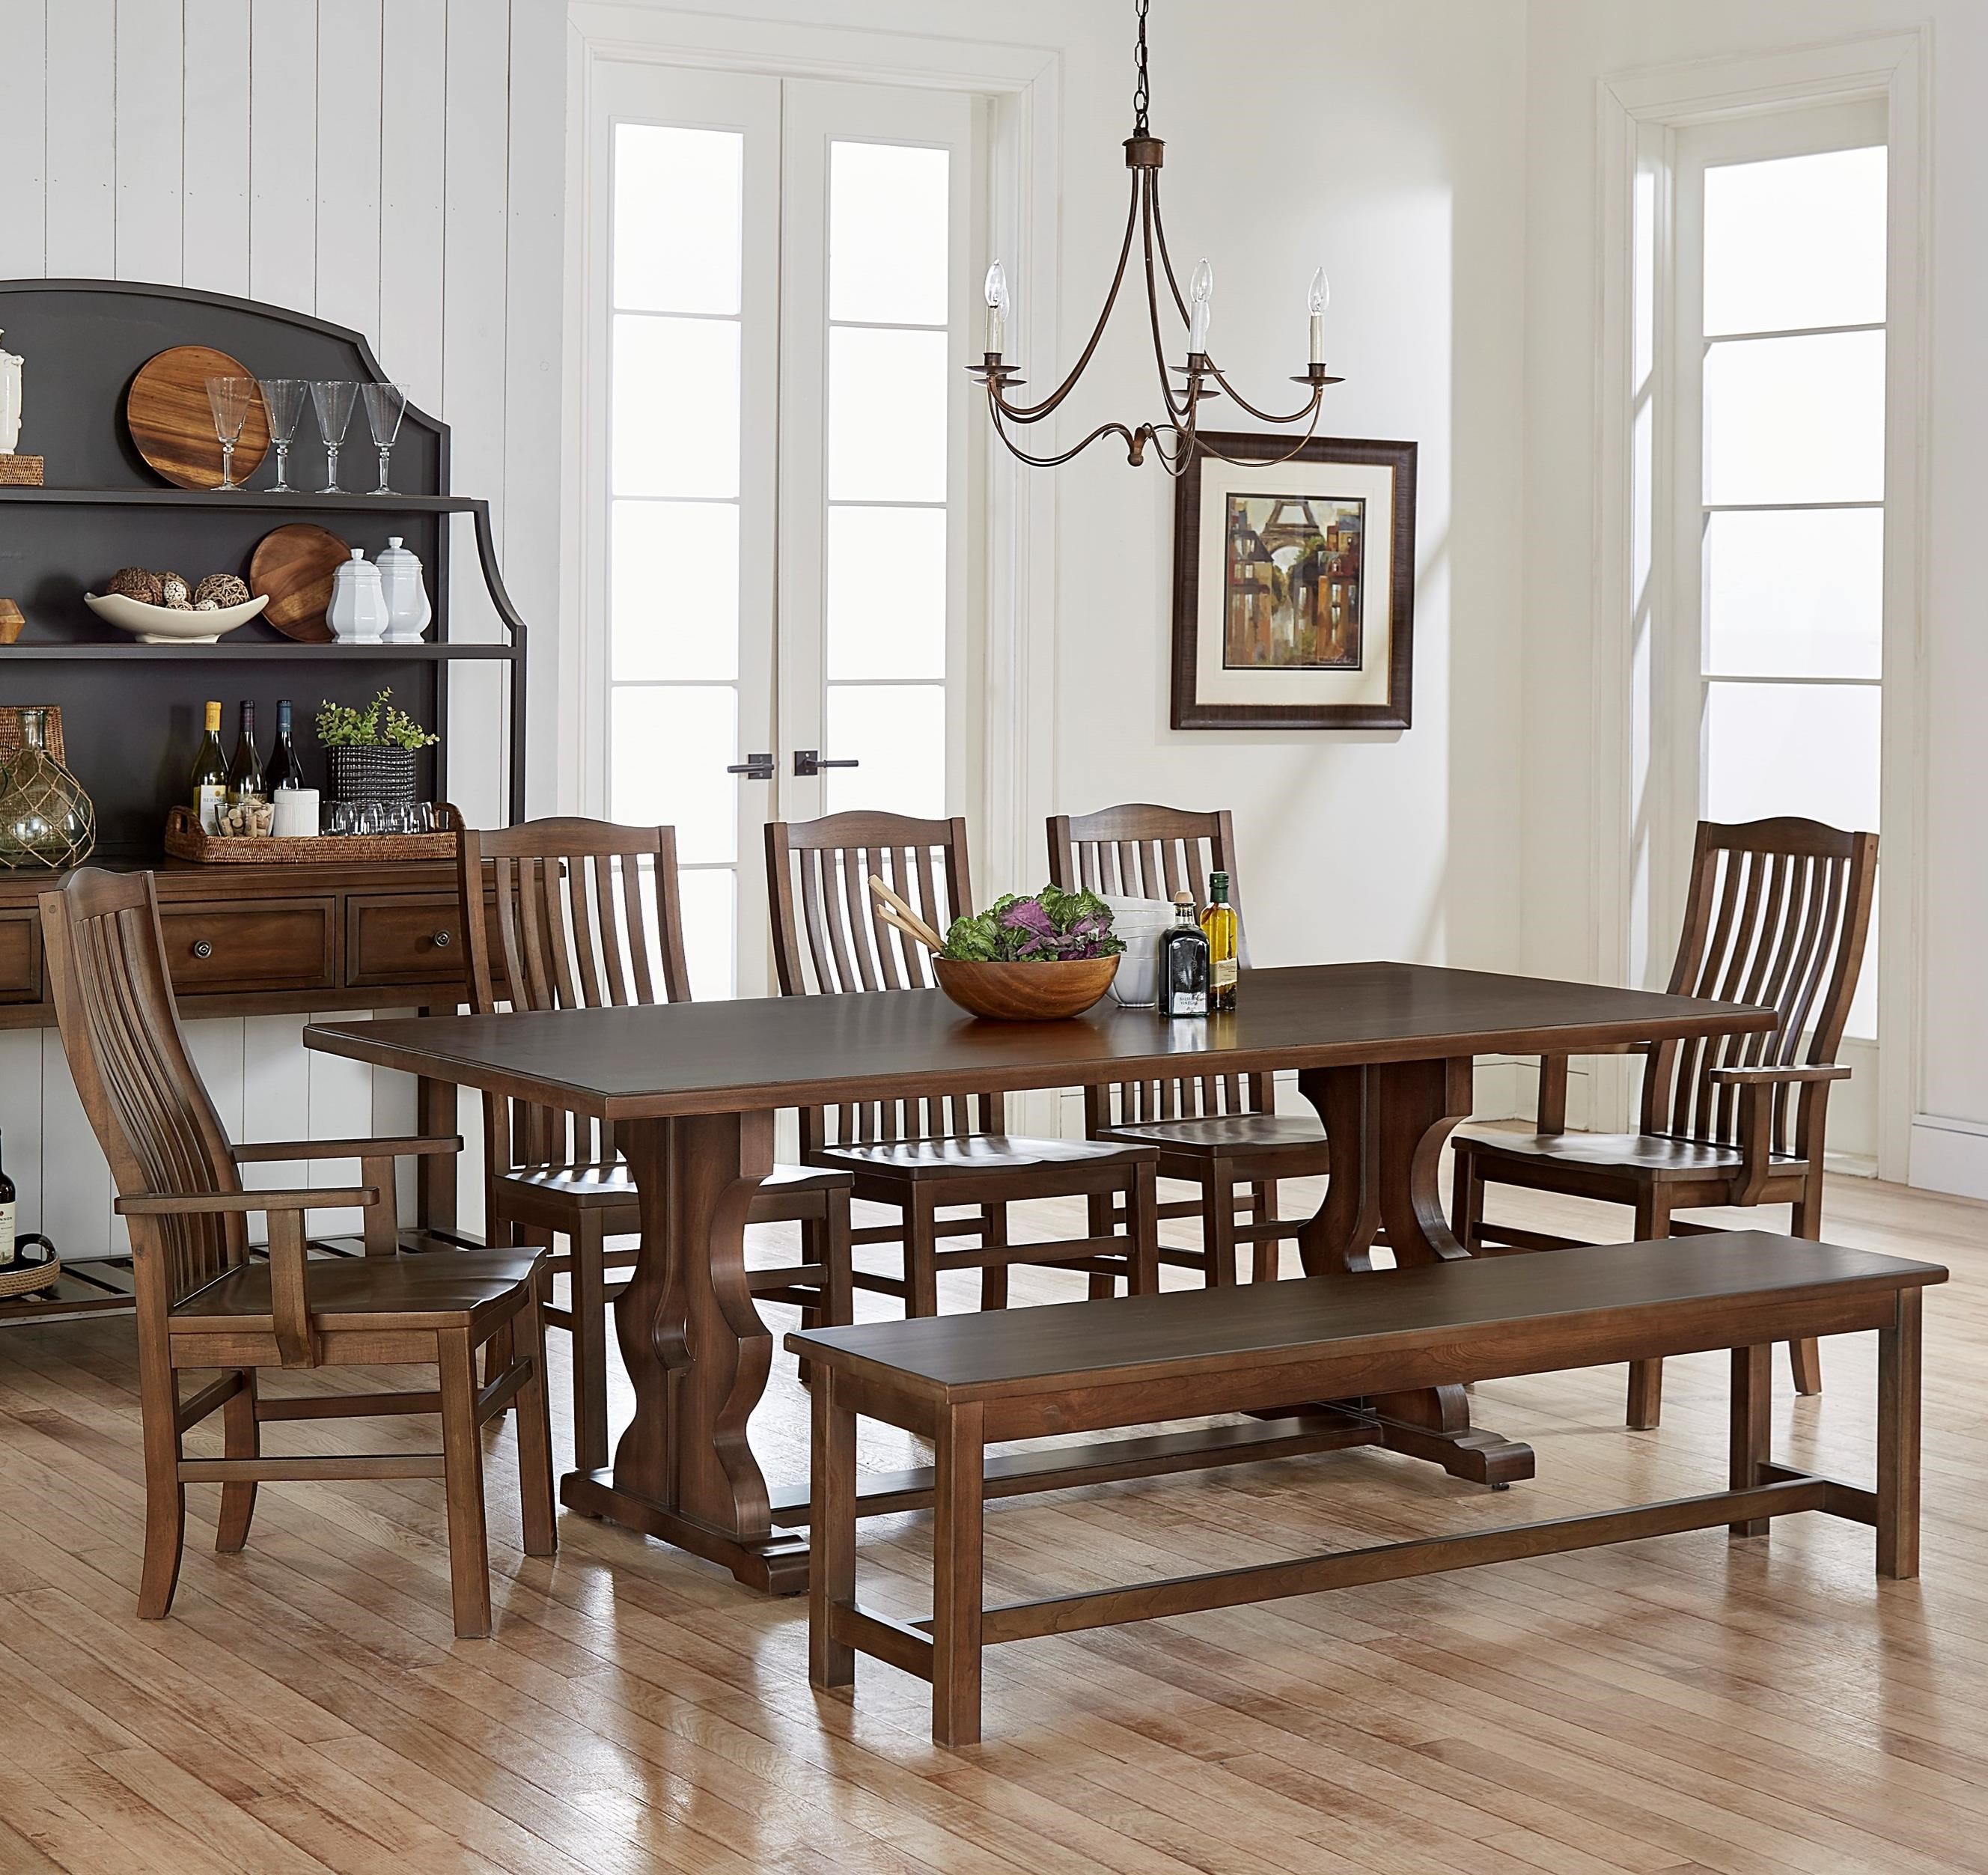 Bassett dining room sets bassett bench made seven piece dining set artisan u0026 post by vaughan bassett simply dining 7piece solid cherry family dinner table set with bench becker furniture world dining 7 or more piece dzzzfo